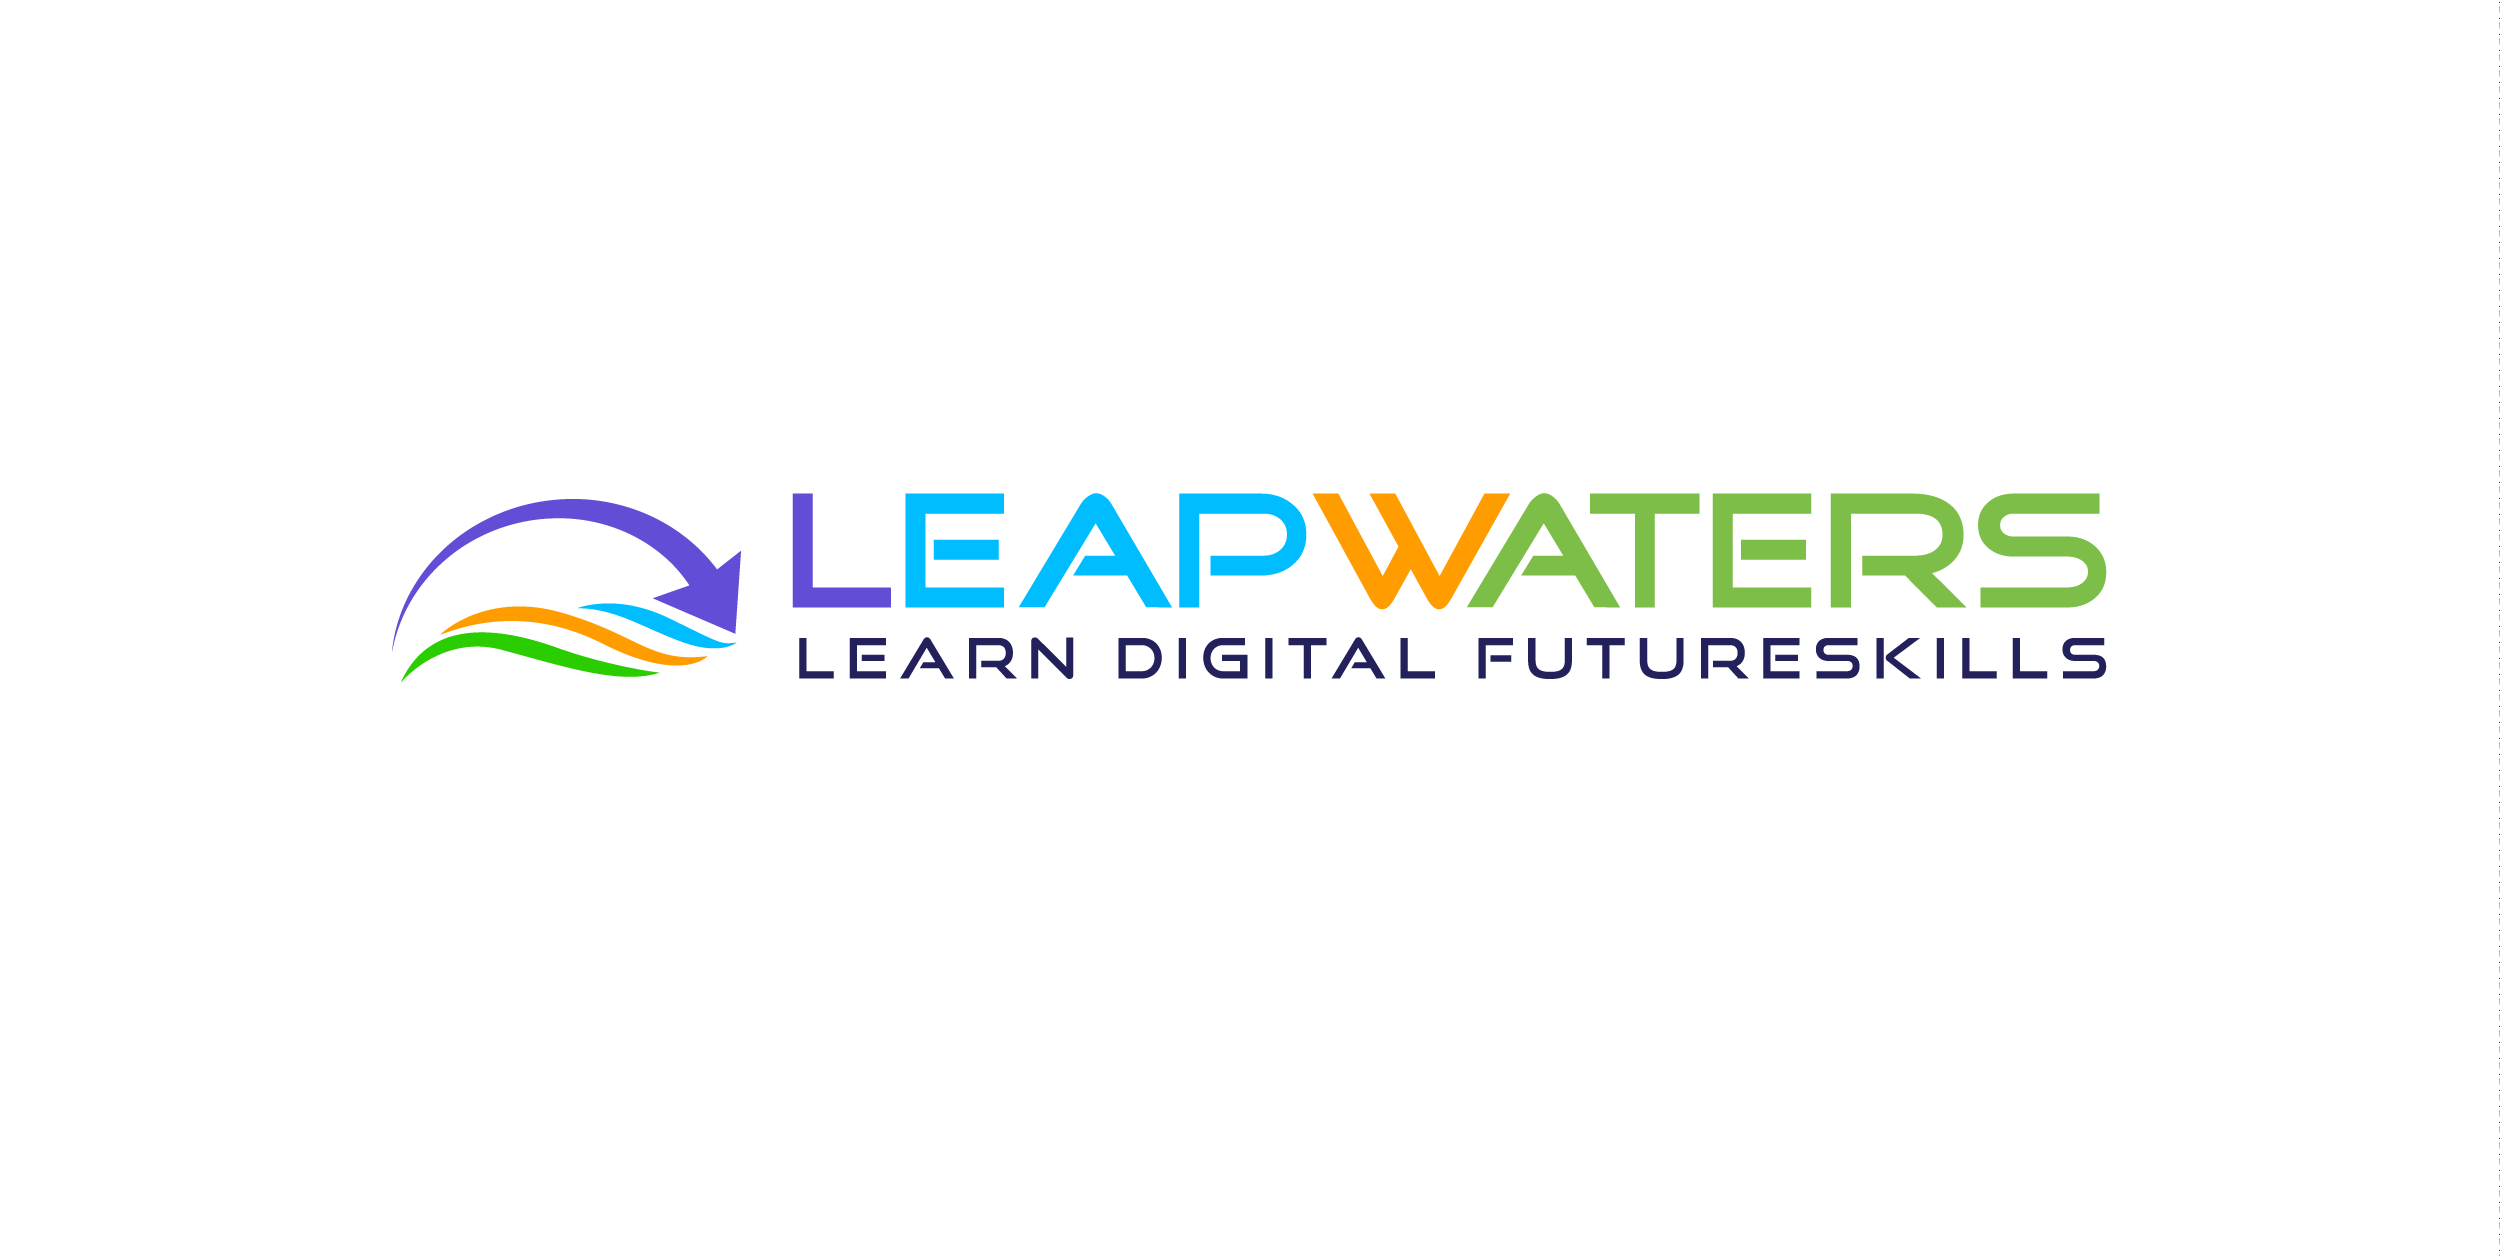 New Year brings us closer to the future. Be ready with LEAPWATERS Digital Futureskills courses